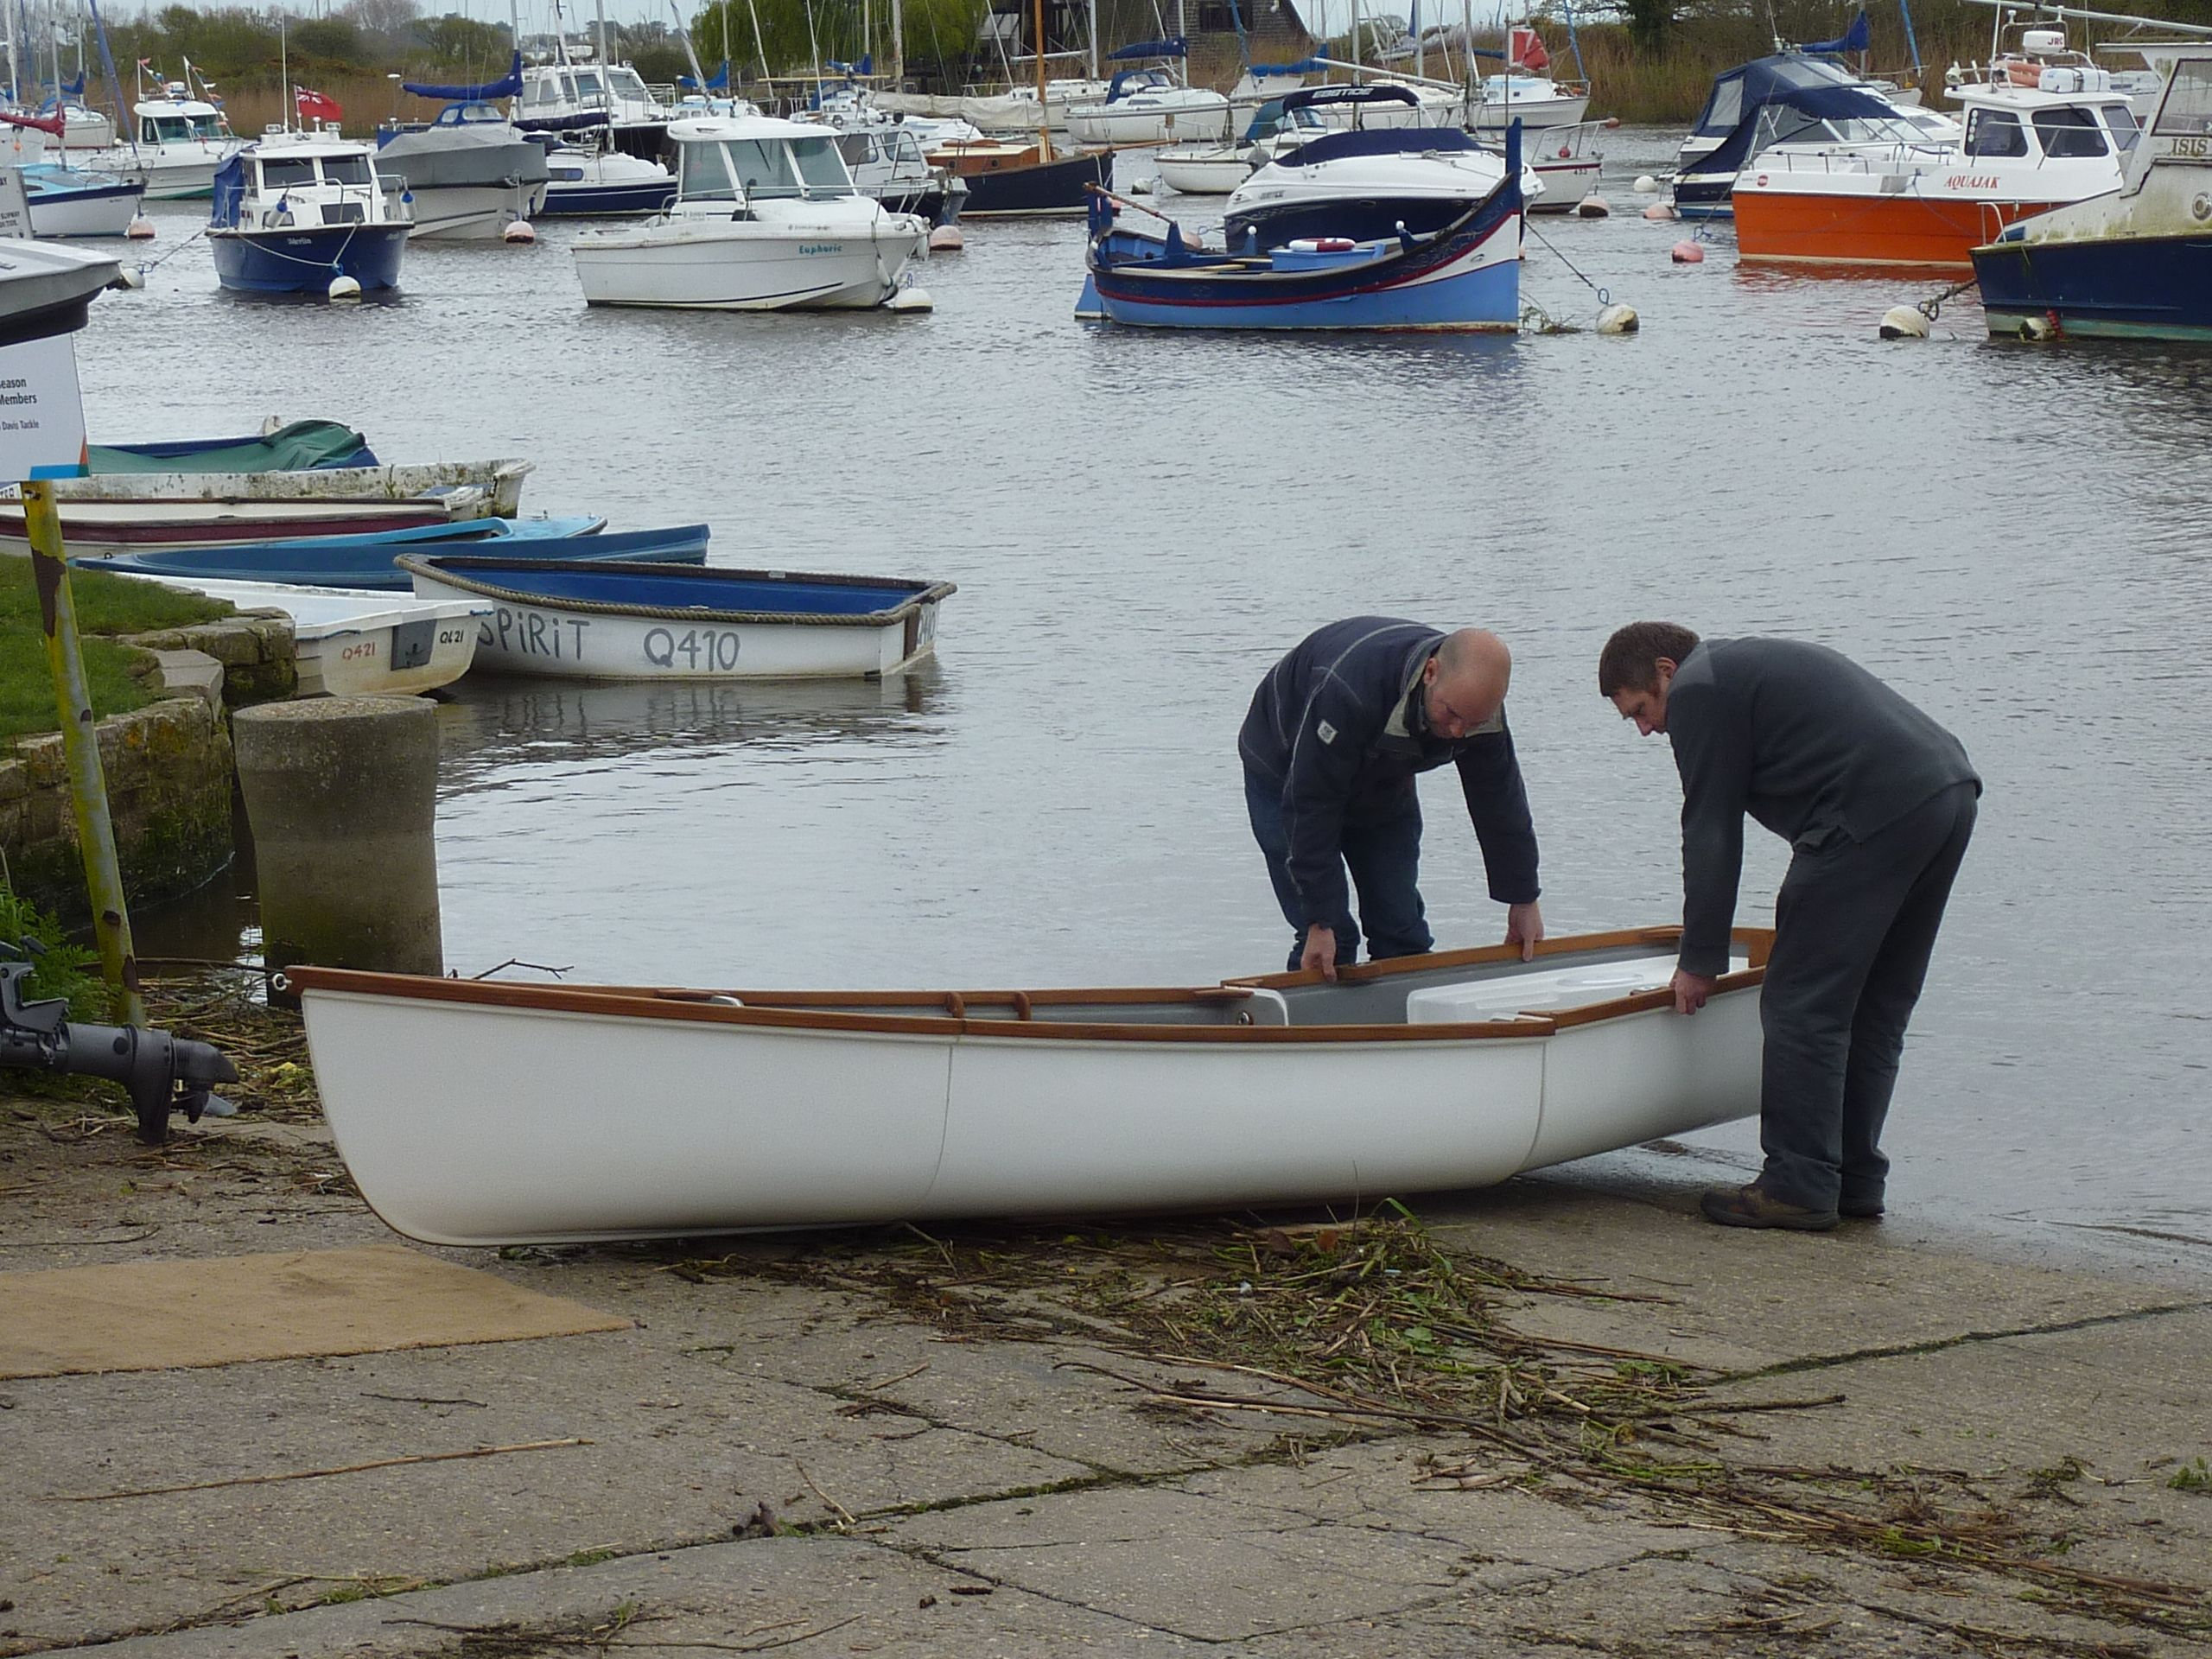 Trio 14 Sectional Nesting Boat By Nestaway Being Assembled Each